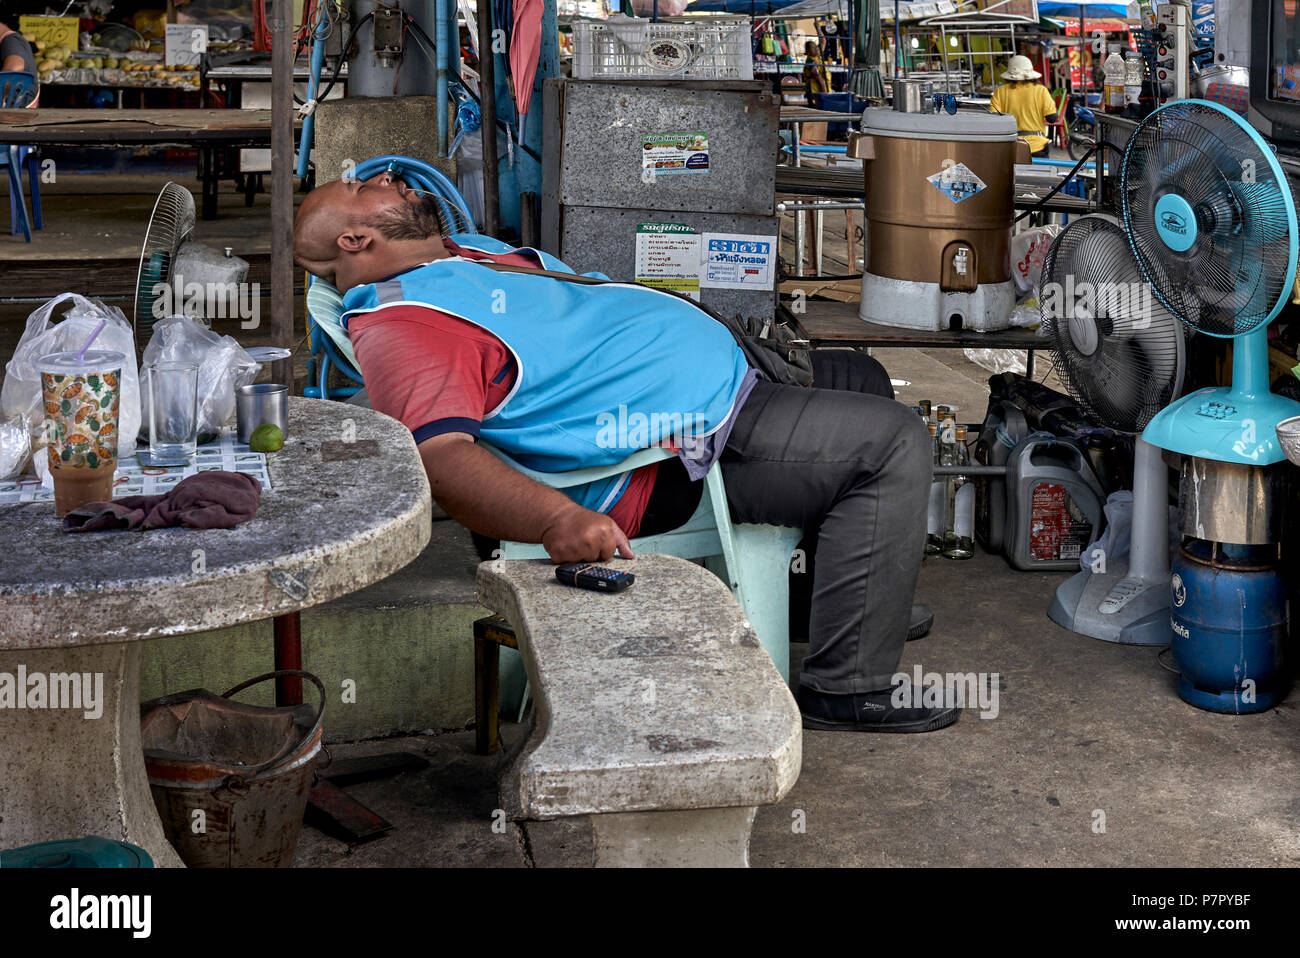 Thailand. A very hot day and a large man asleep in front of two cooling fans - Stock Image